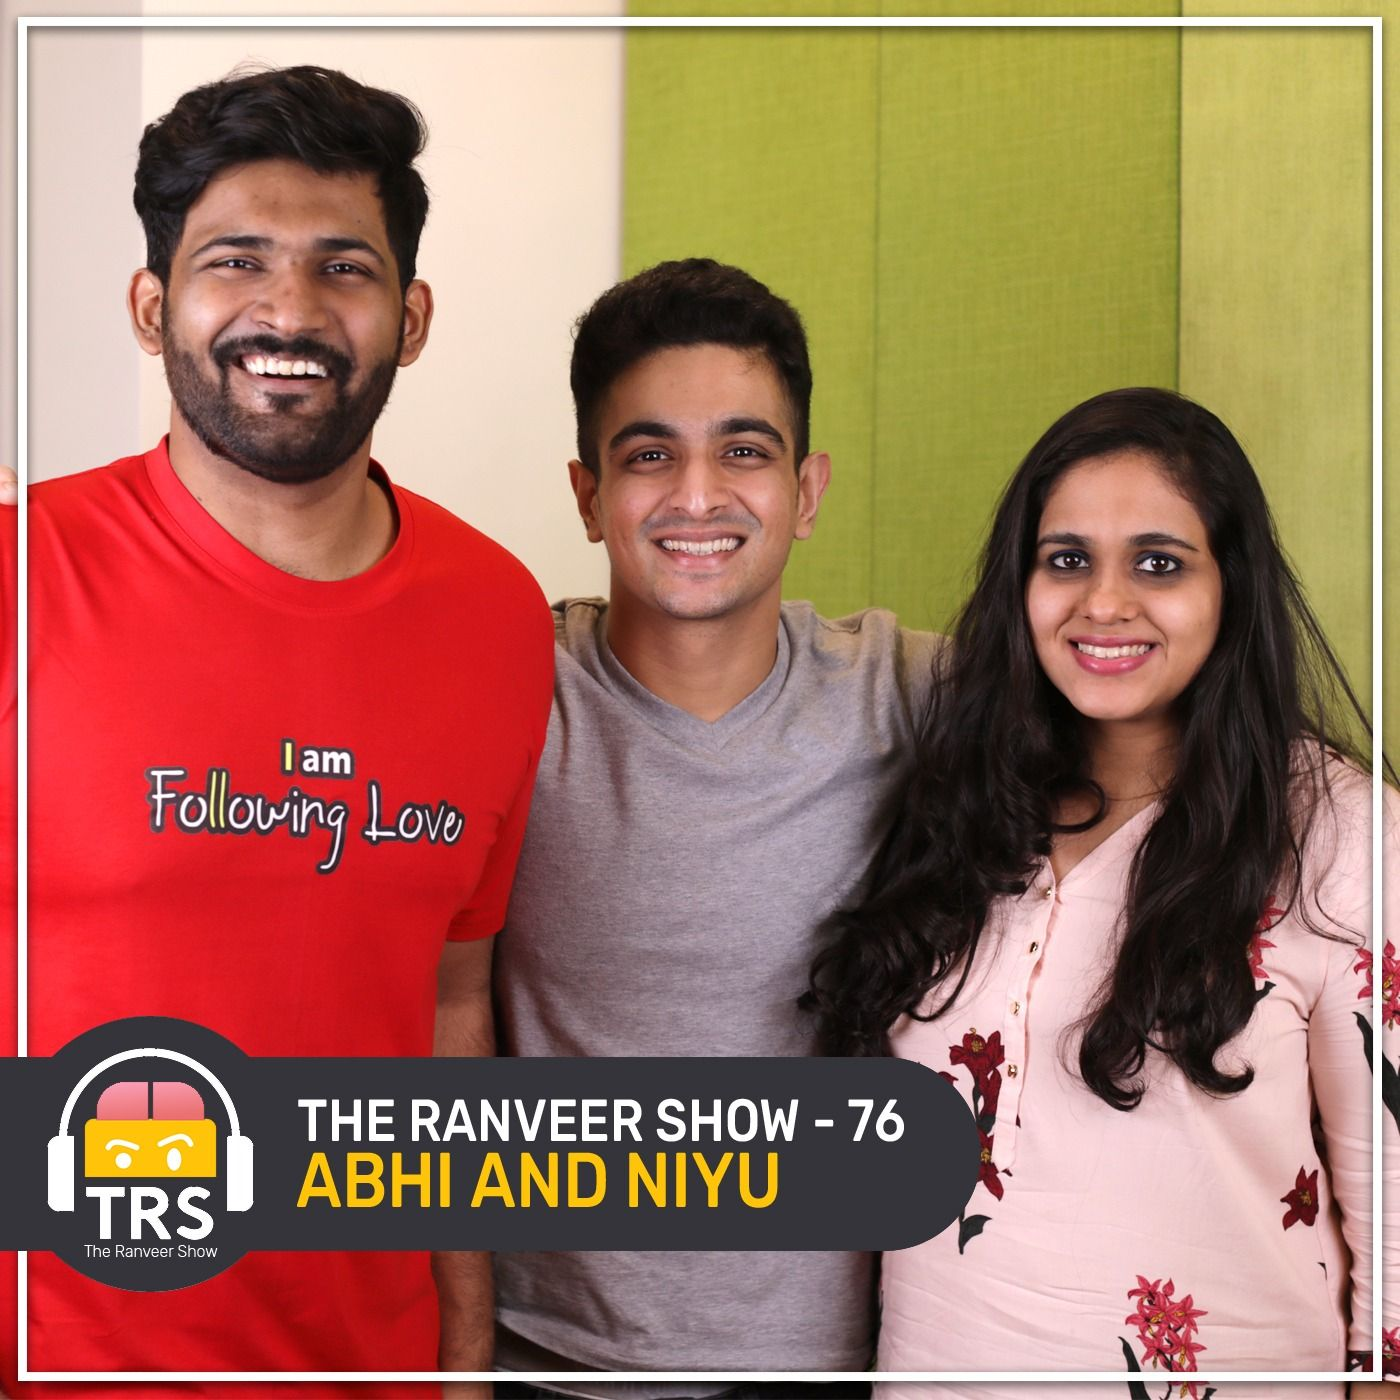 Abhi and Niyu On India's Future, Content Entrepreneurship & Indian Policies | The Ranveer Show 76